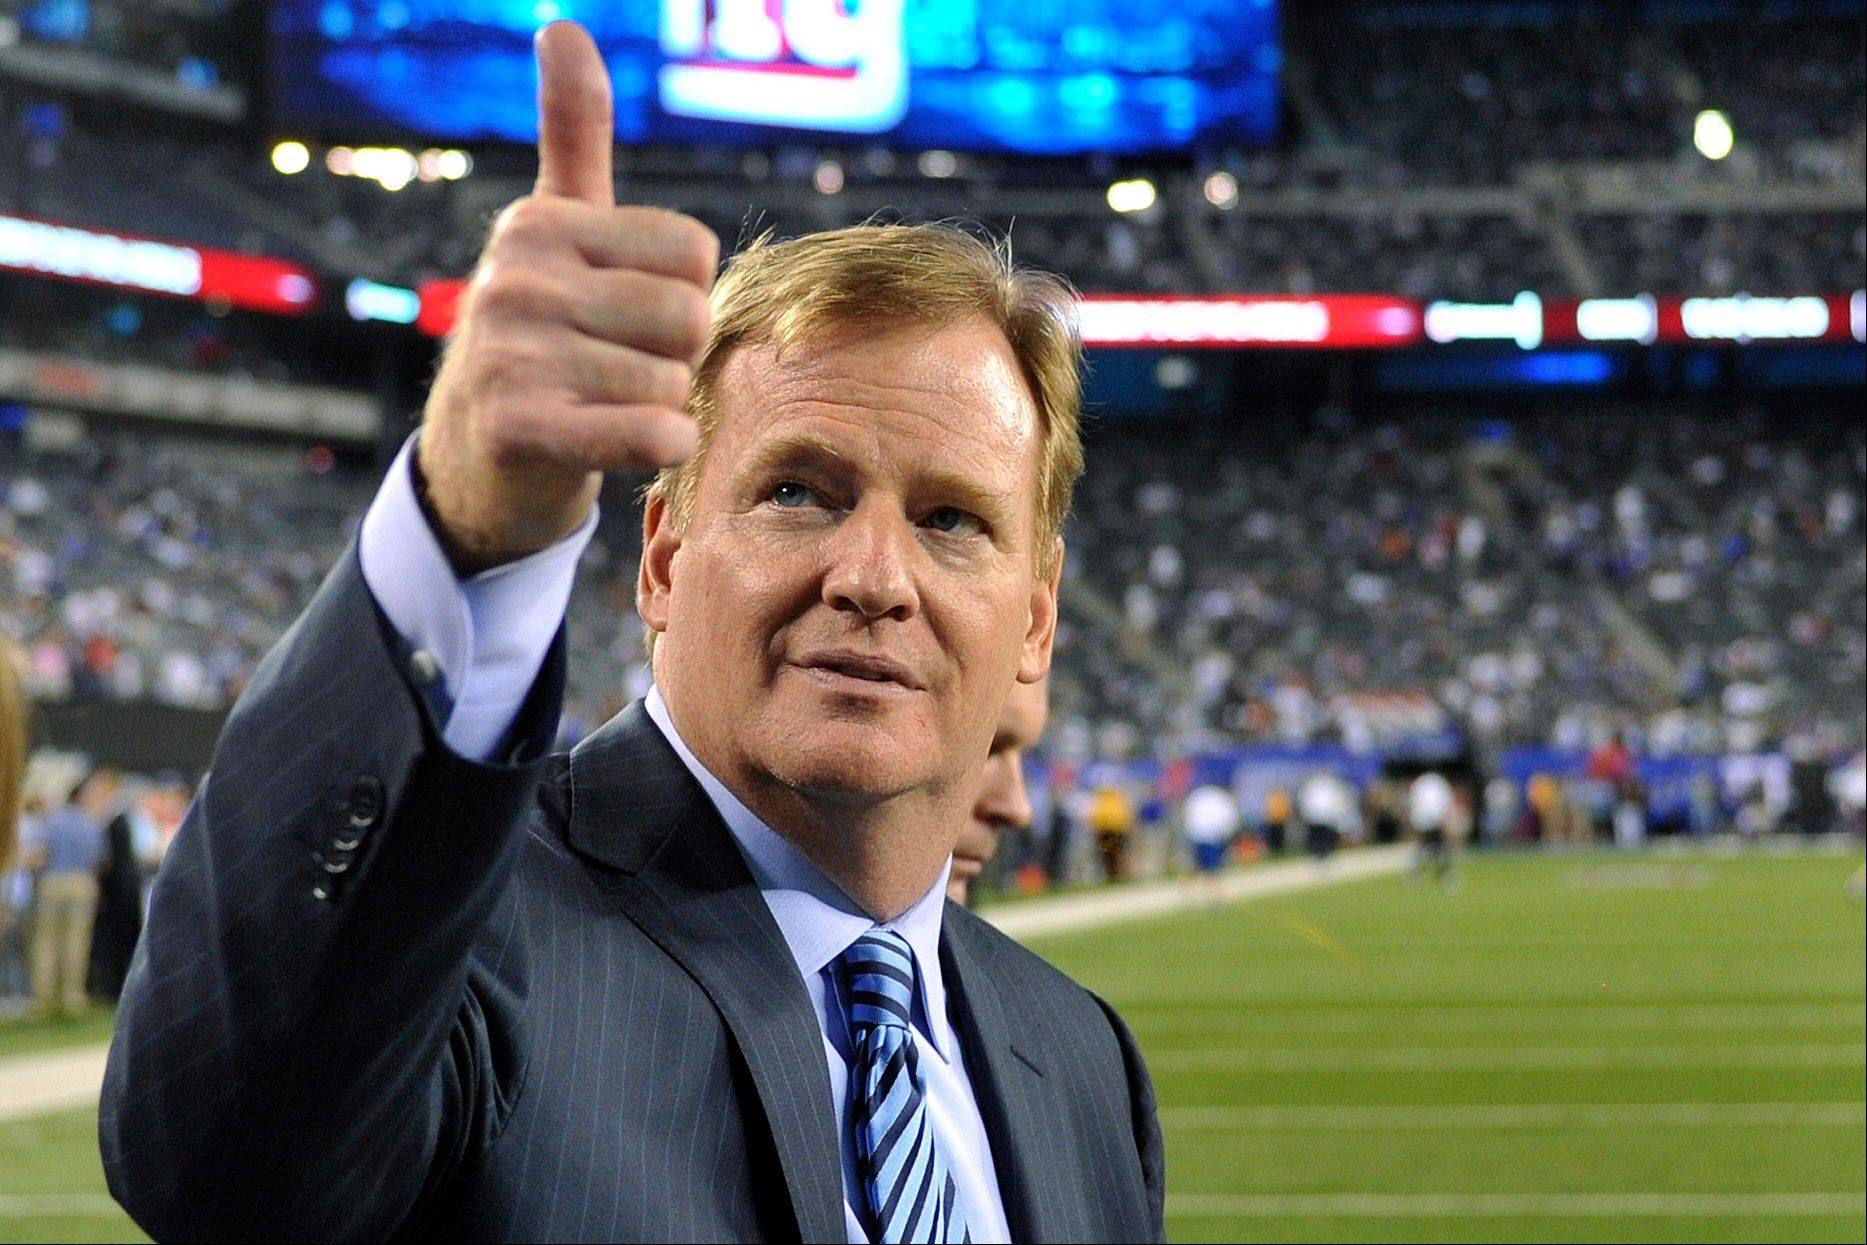 Commissioner Roger Goodell gestures to fans before a game between the New York Giants and the Dallas Cowboys in East Rutherford, N.J. The NFL and referees union reached a tentative agreement on Wednesday to end a three-month lockout that triggered a wave of frustration and anger over replacement officials and threatened to disrupt the rest of the season.